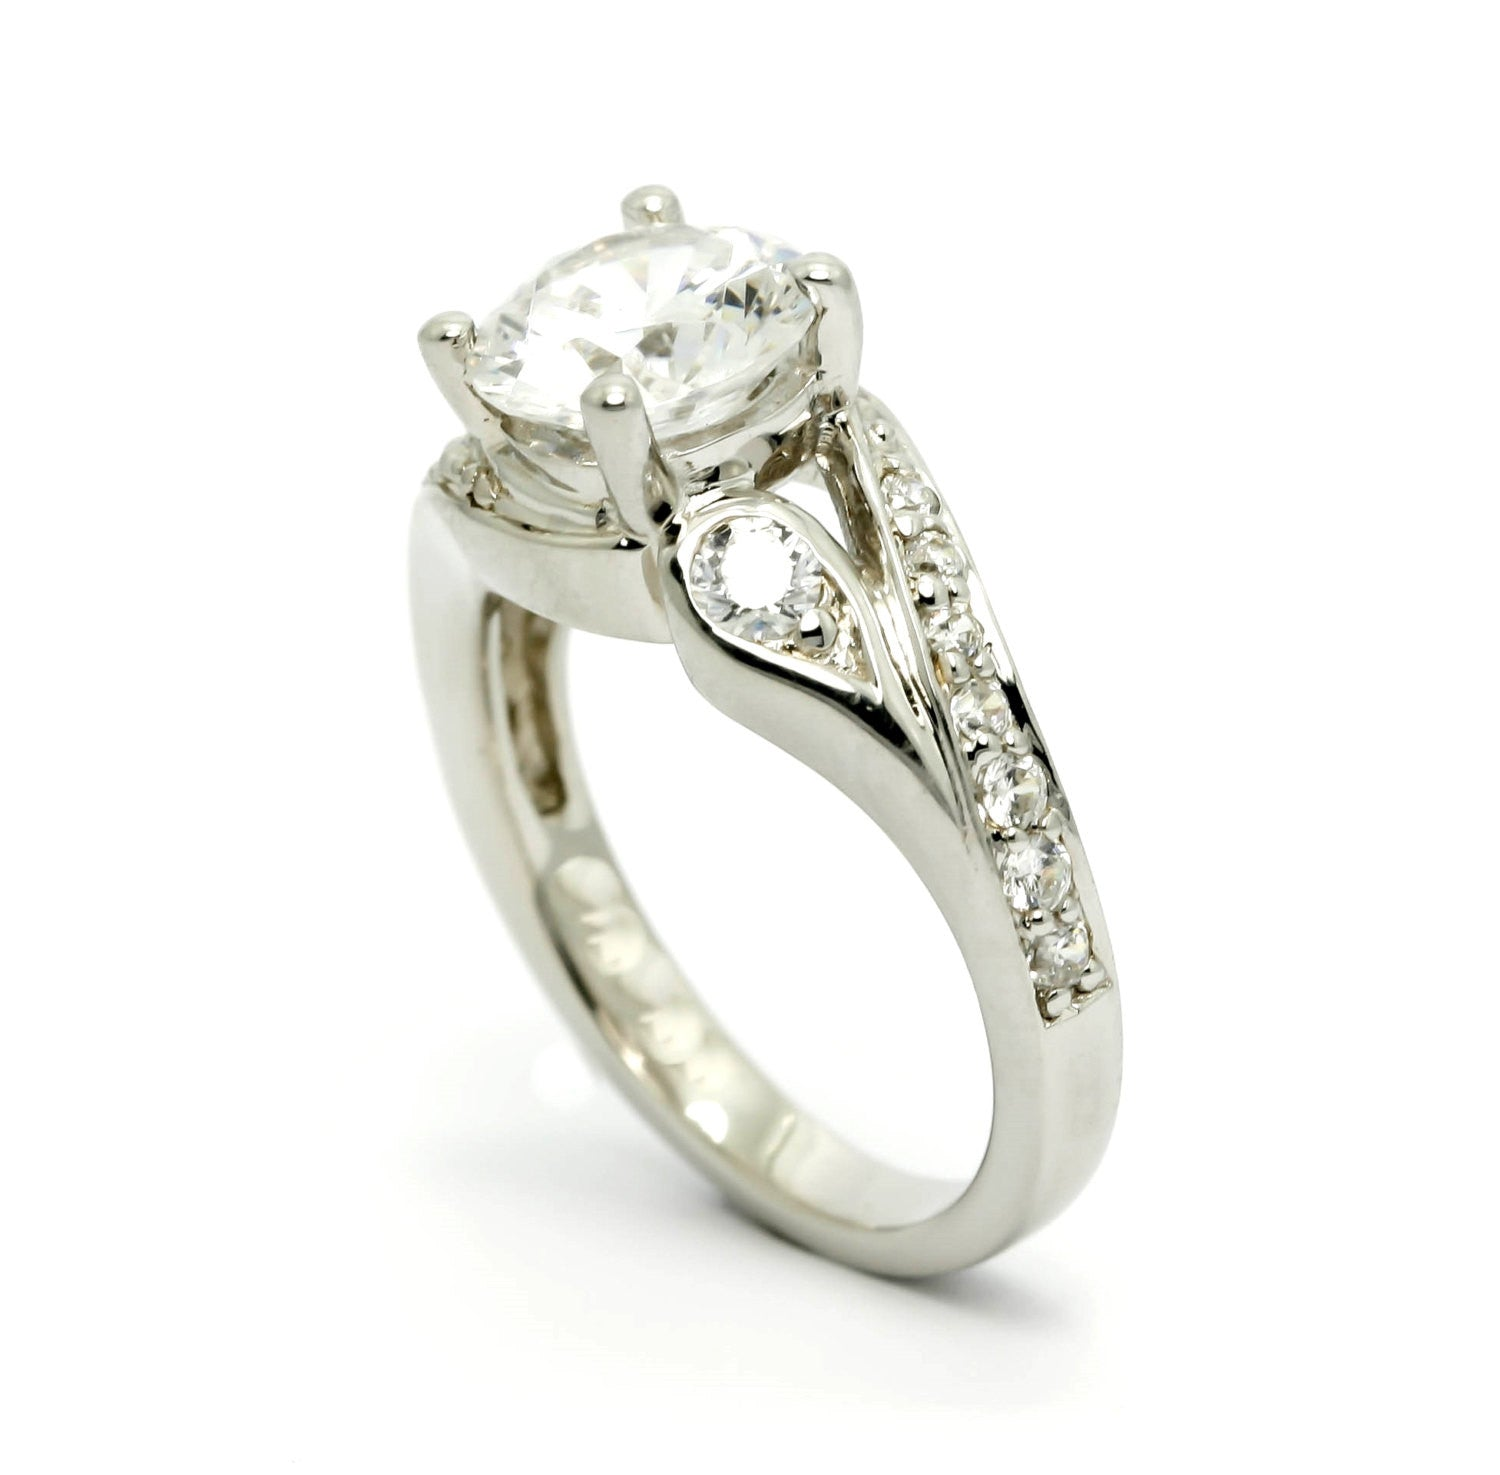 Unique Design Shank Diamond Ring Engagement and Wedding Set